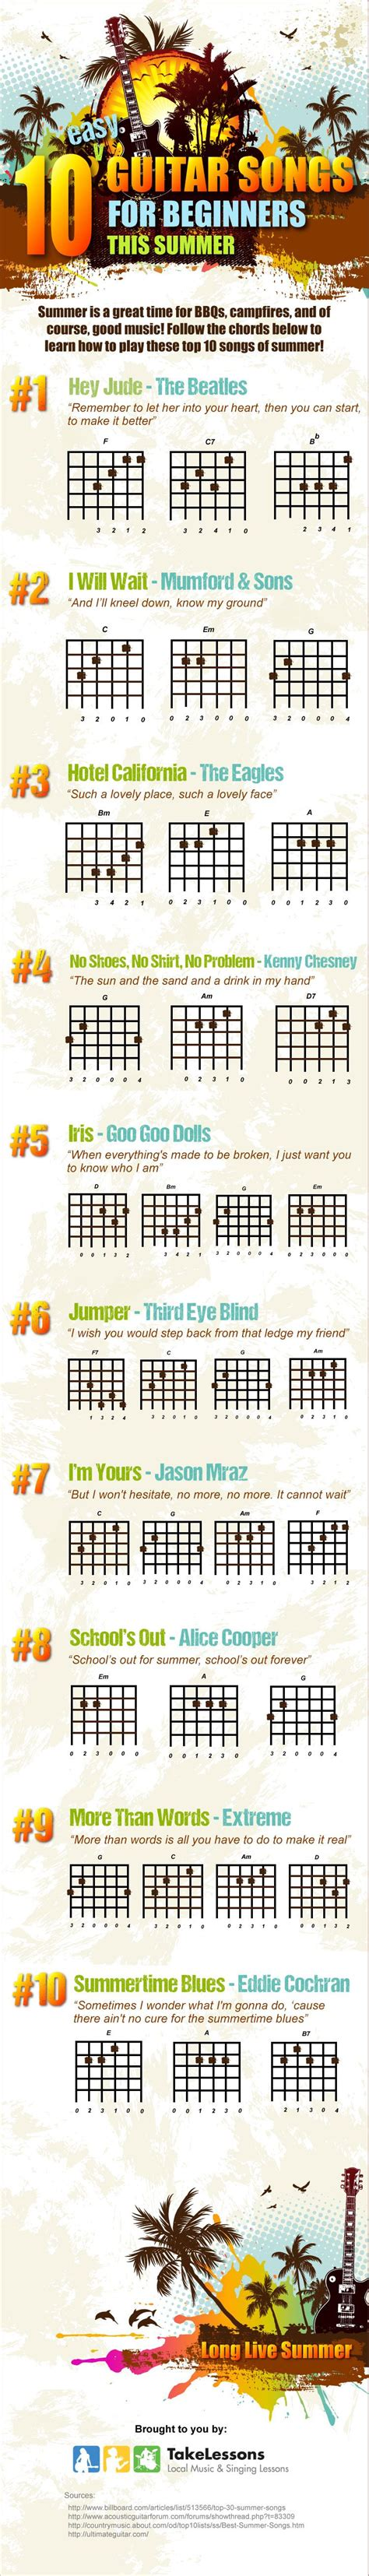 Wild thing by the troggs. 10 Easy Guitar Songs for Beginners | Guitar | Pinterest | Easy guitar songs, Guitar songs and ...